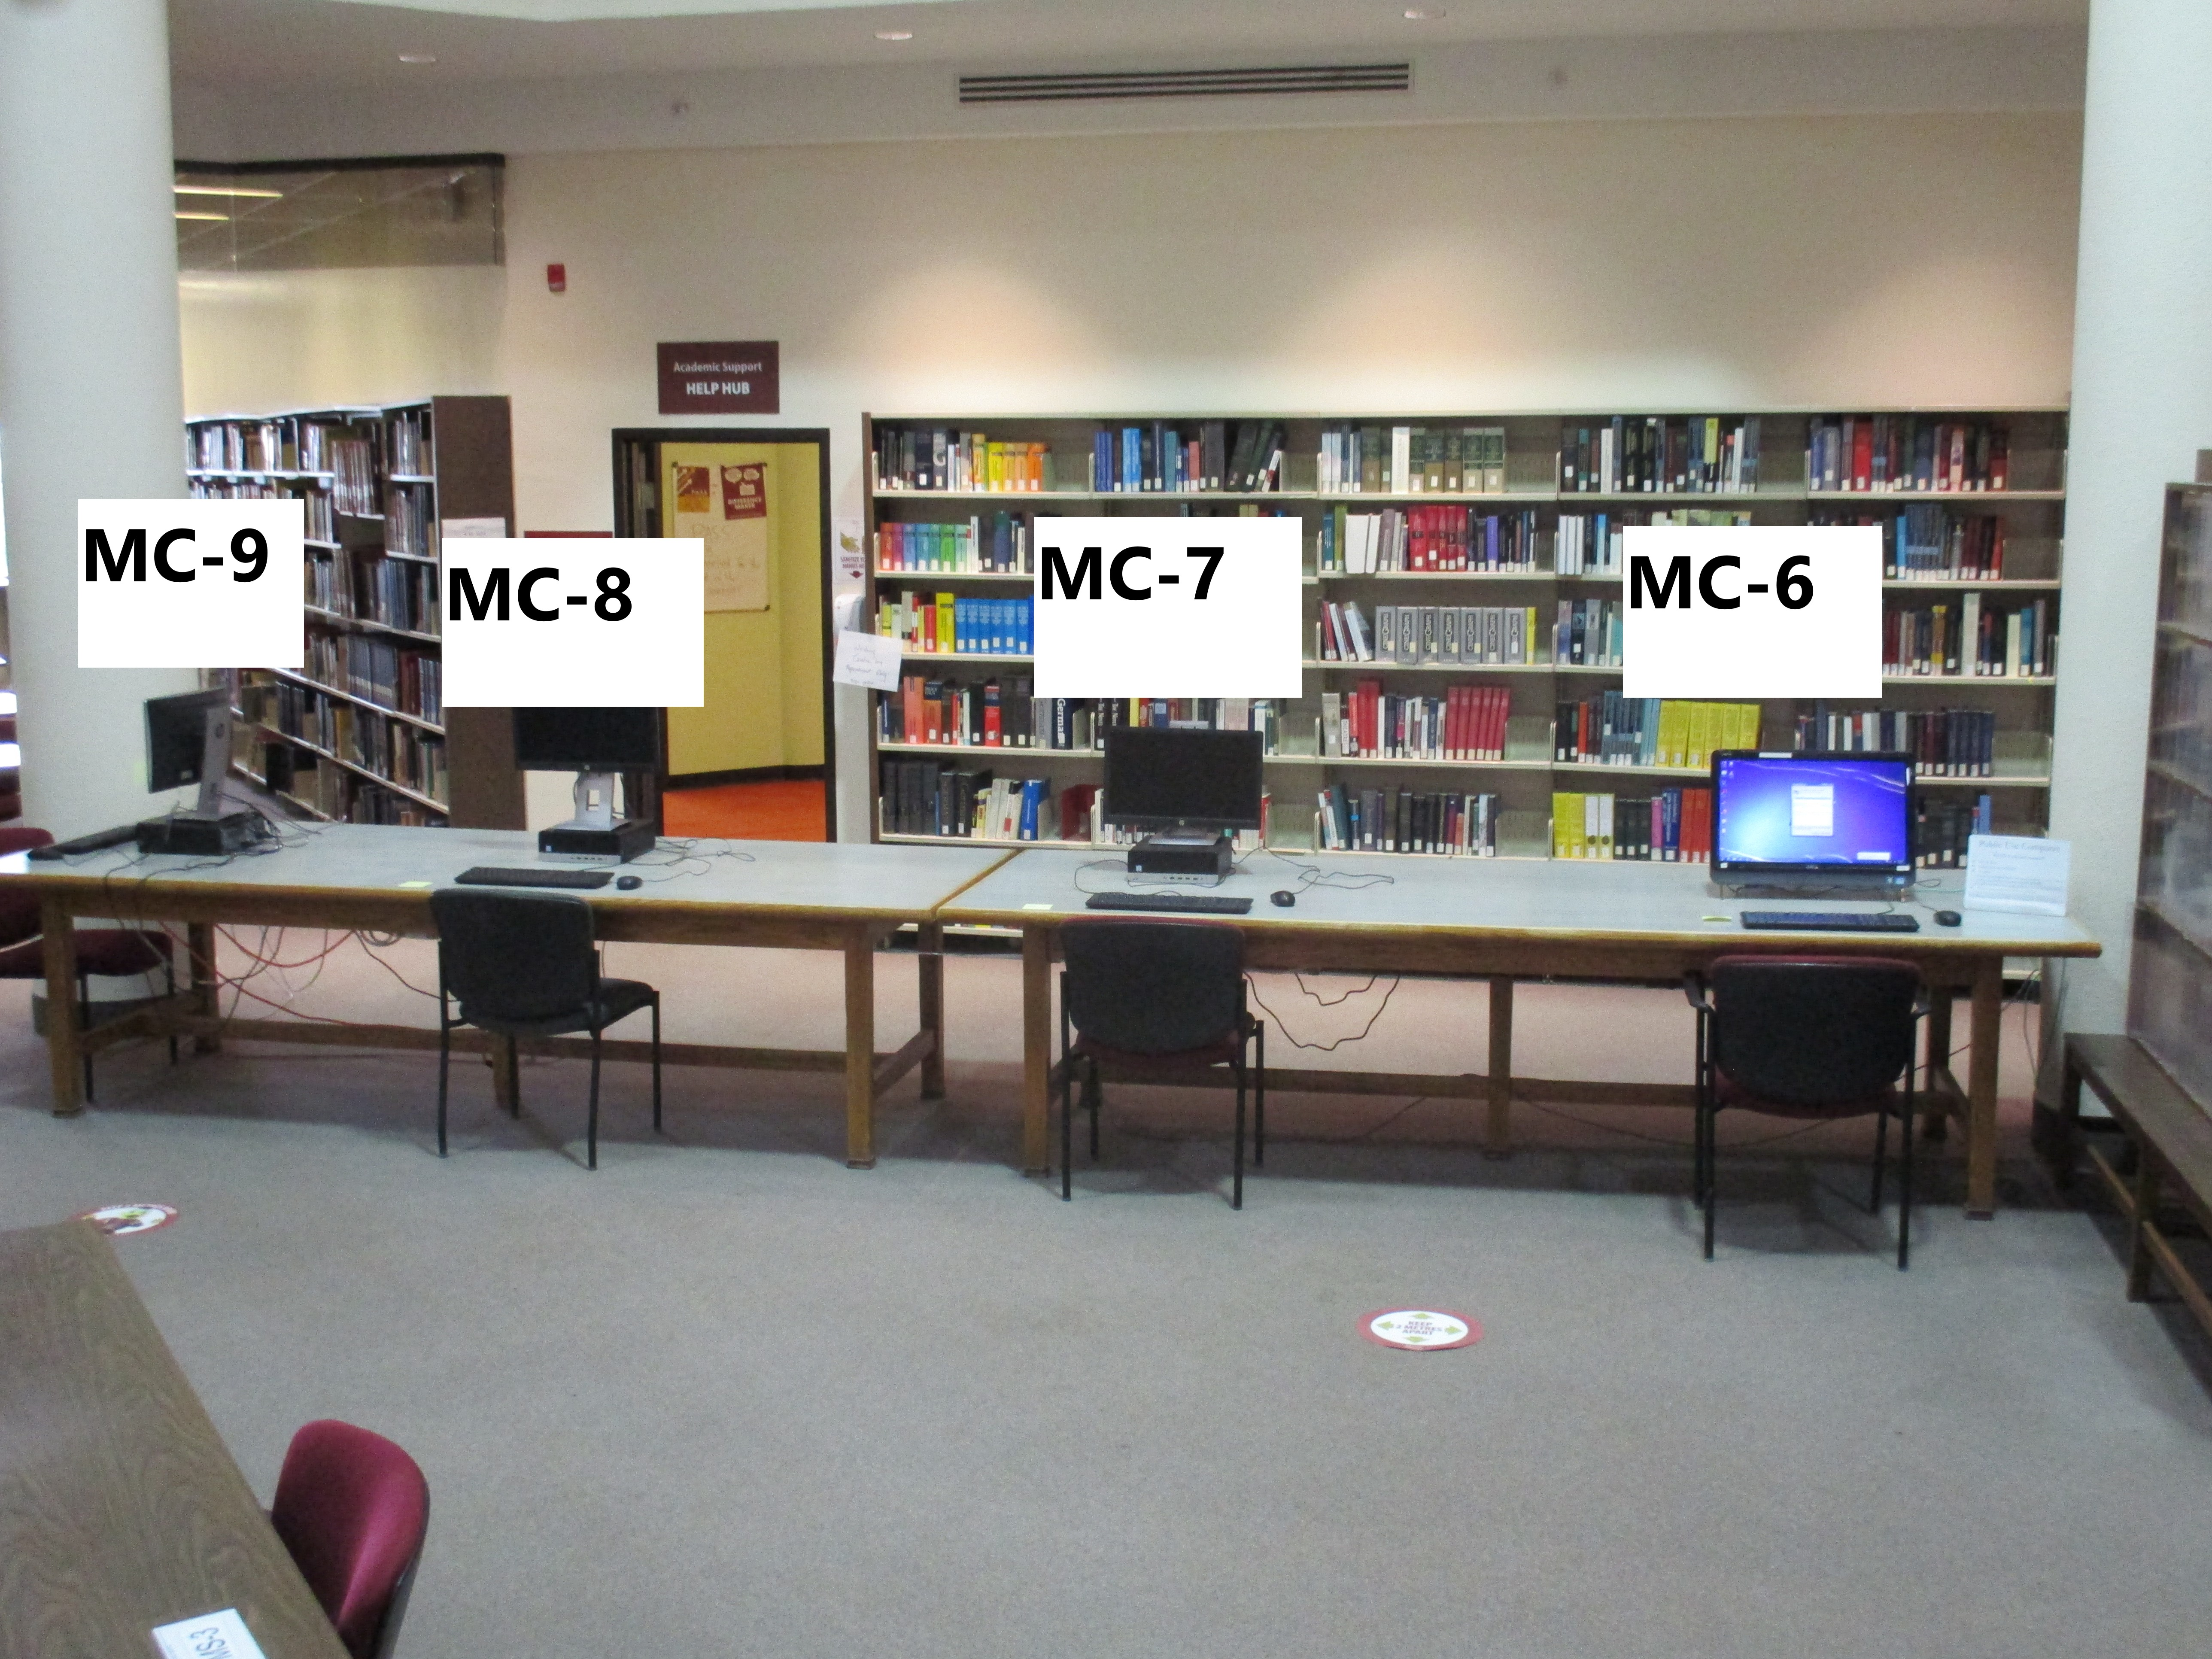 Photos of computers with numbered seats